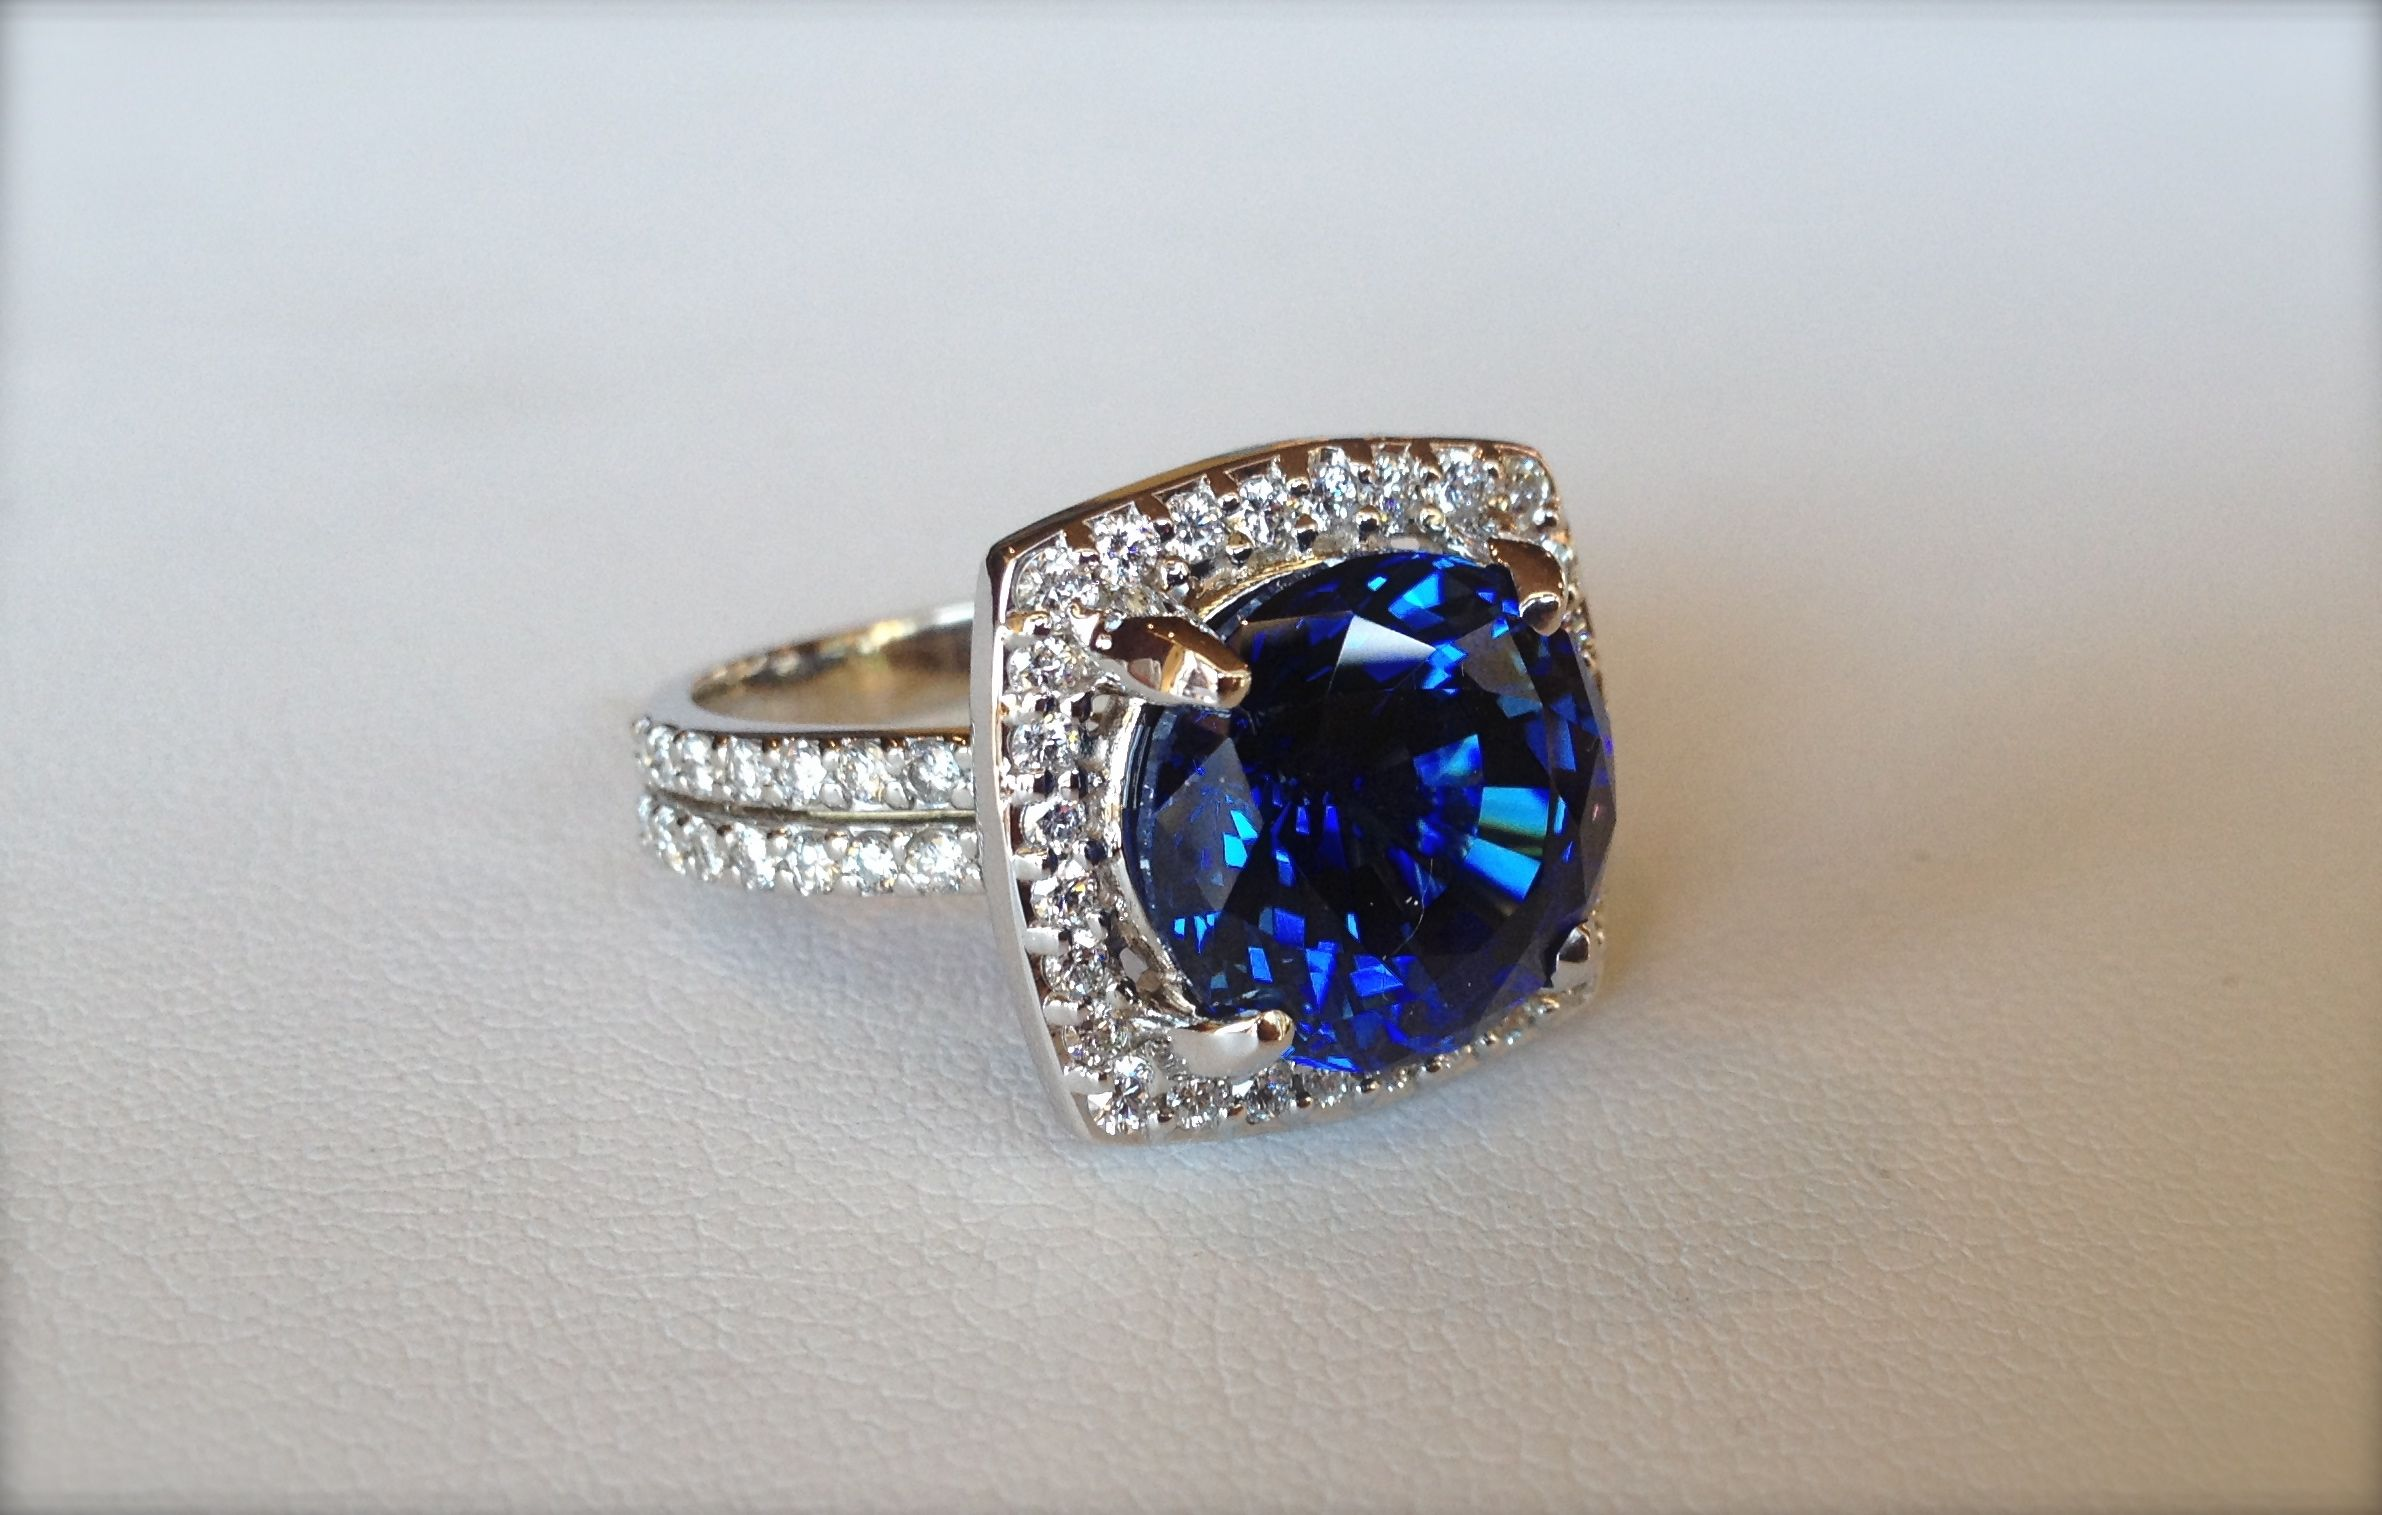 Just Created This Stunning 12 Carat Gem Quality Sapphire And Diamond Ring Stunning Sapphire Dia Handcrafted Designer Jewelry Jewelry Design Jewelry Creation